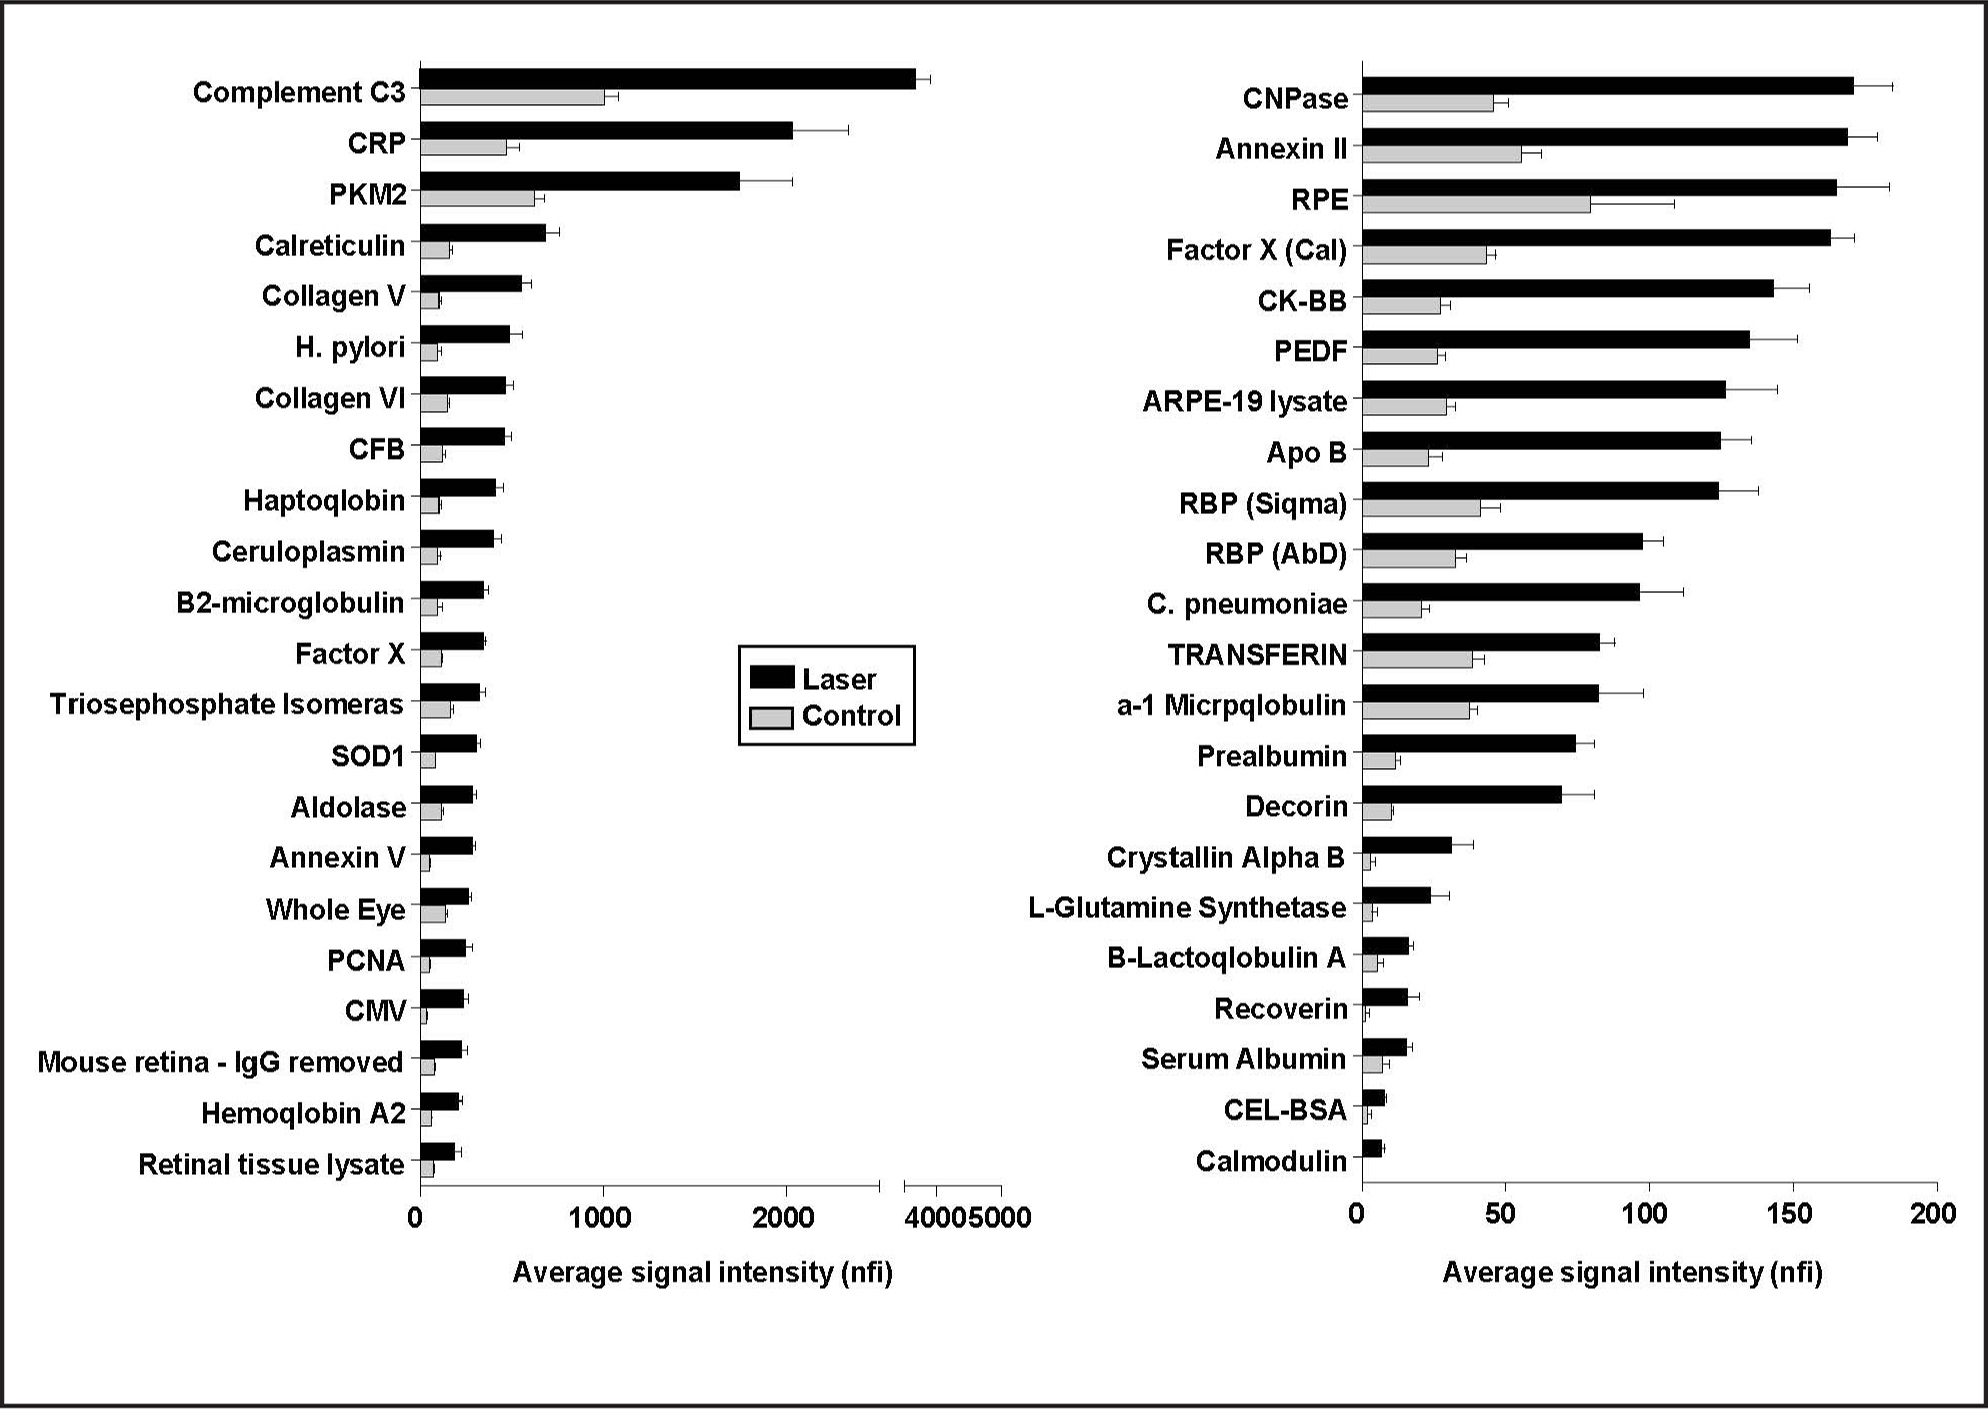 Average of relative signal intensities for immunoglobulin G inflammatory markers before and after laser application. Significance analysis of the microarray signals identified inflammatory markers with significant (P < .05) change in expression after laser injury, compared to control before laser application. Approximately two-thirds of the antigens increased expression and one-third decreased expression after laser. These include many inflammatory markers notable for their role in retinal degenerations. nfi = normalized fluorescence intensity.